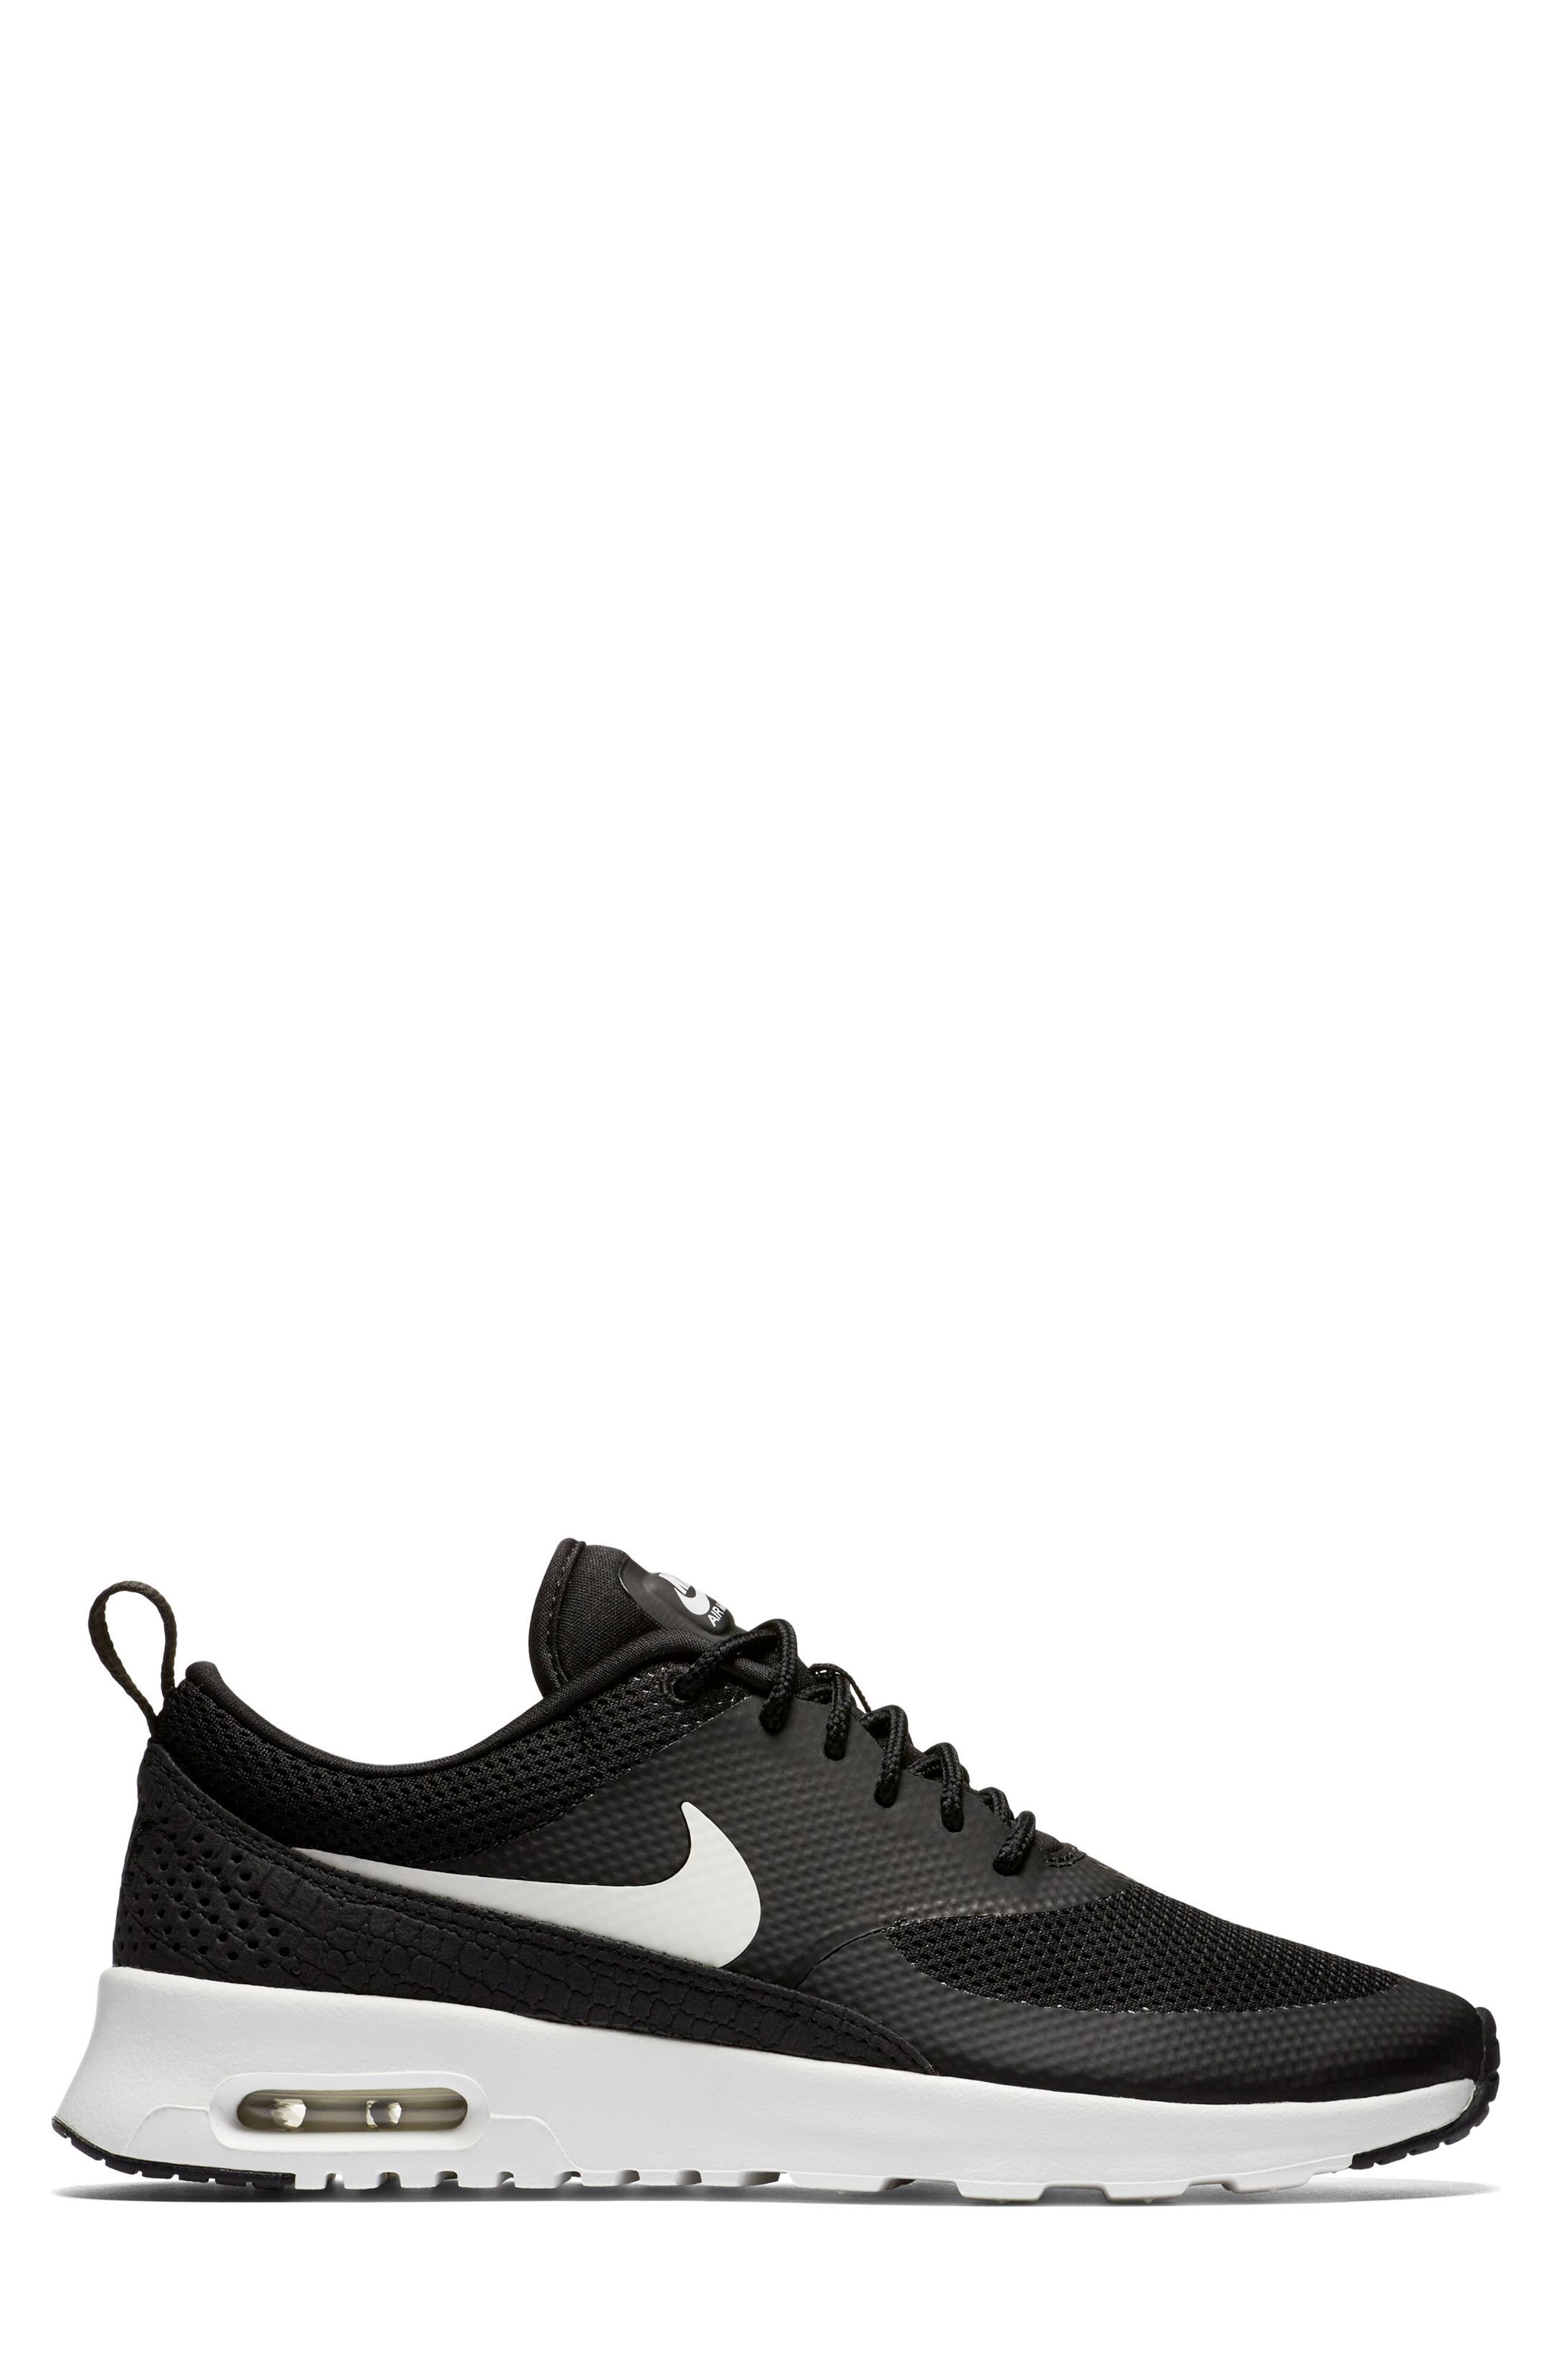 Air Max Thea Sneaker,                             Alternate thumbnail 5, color,                             Black/ Summit White